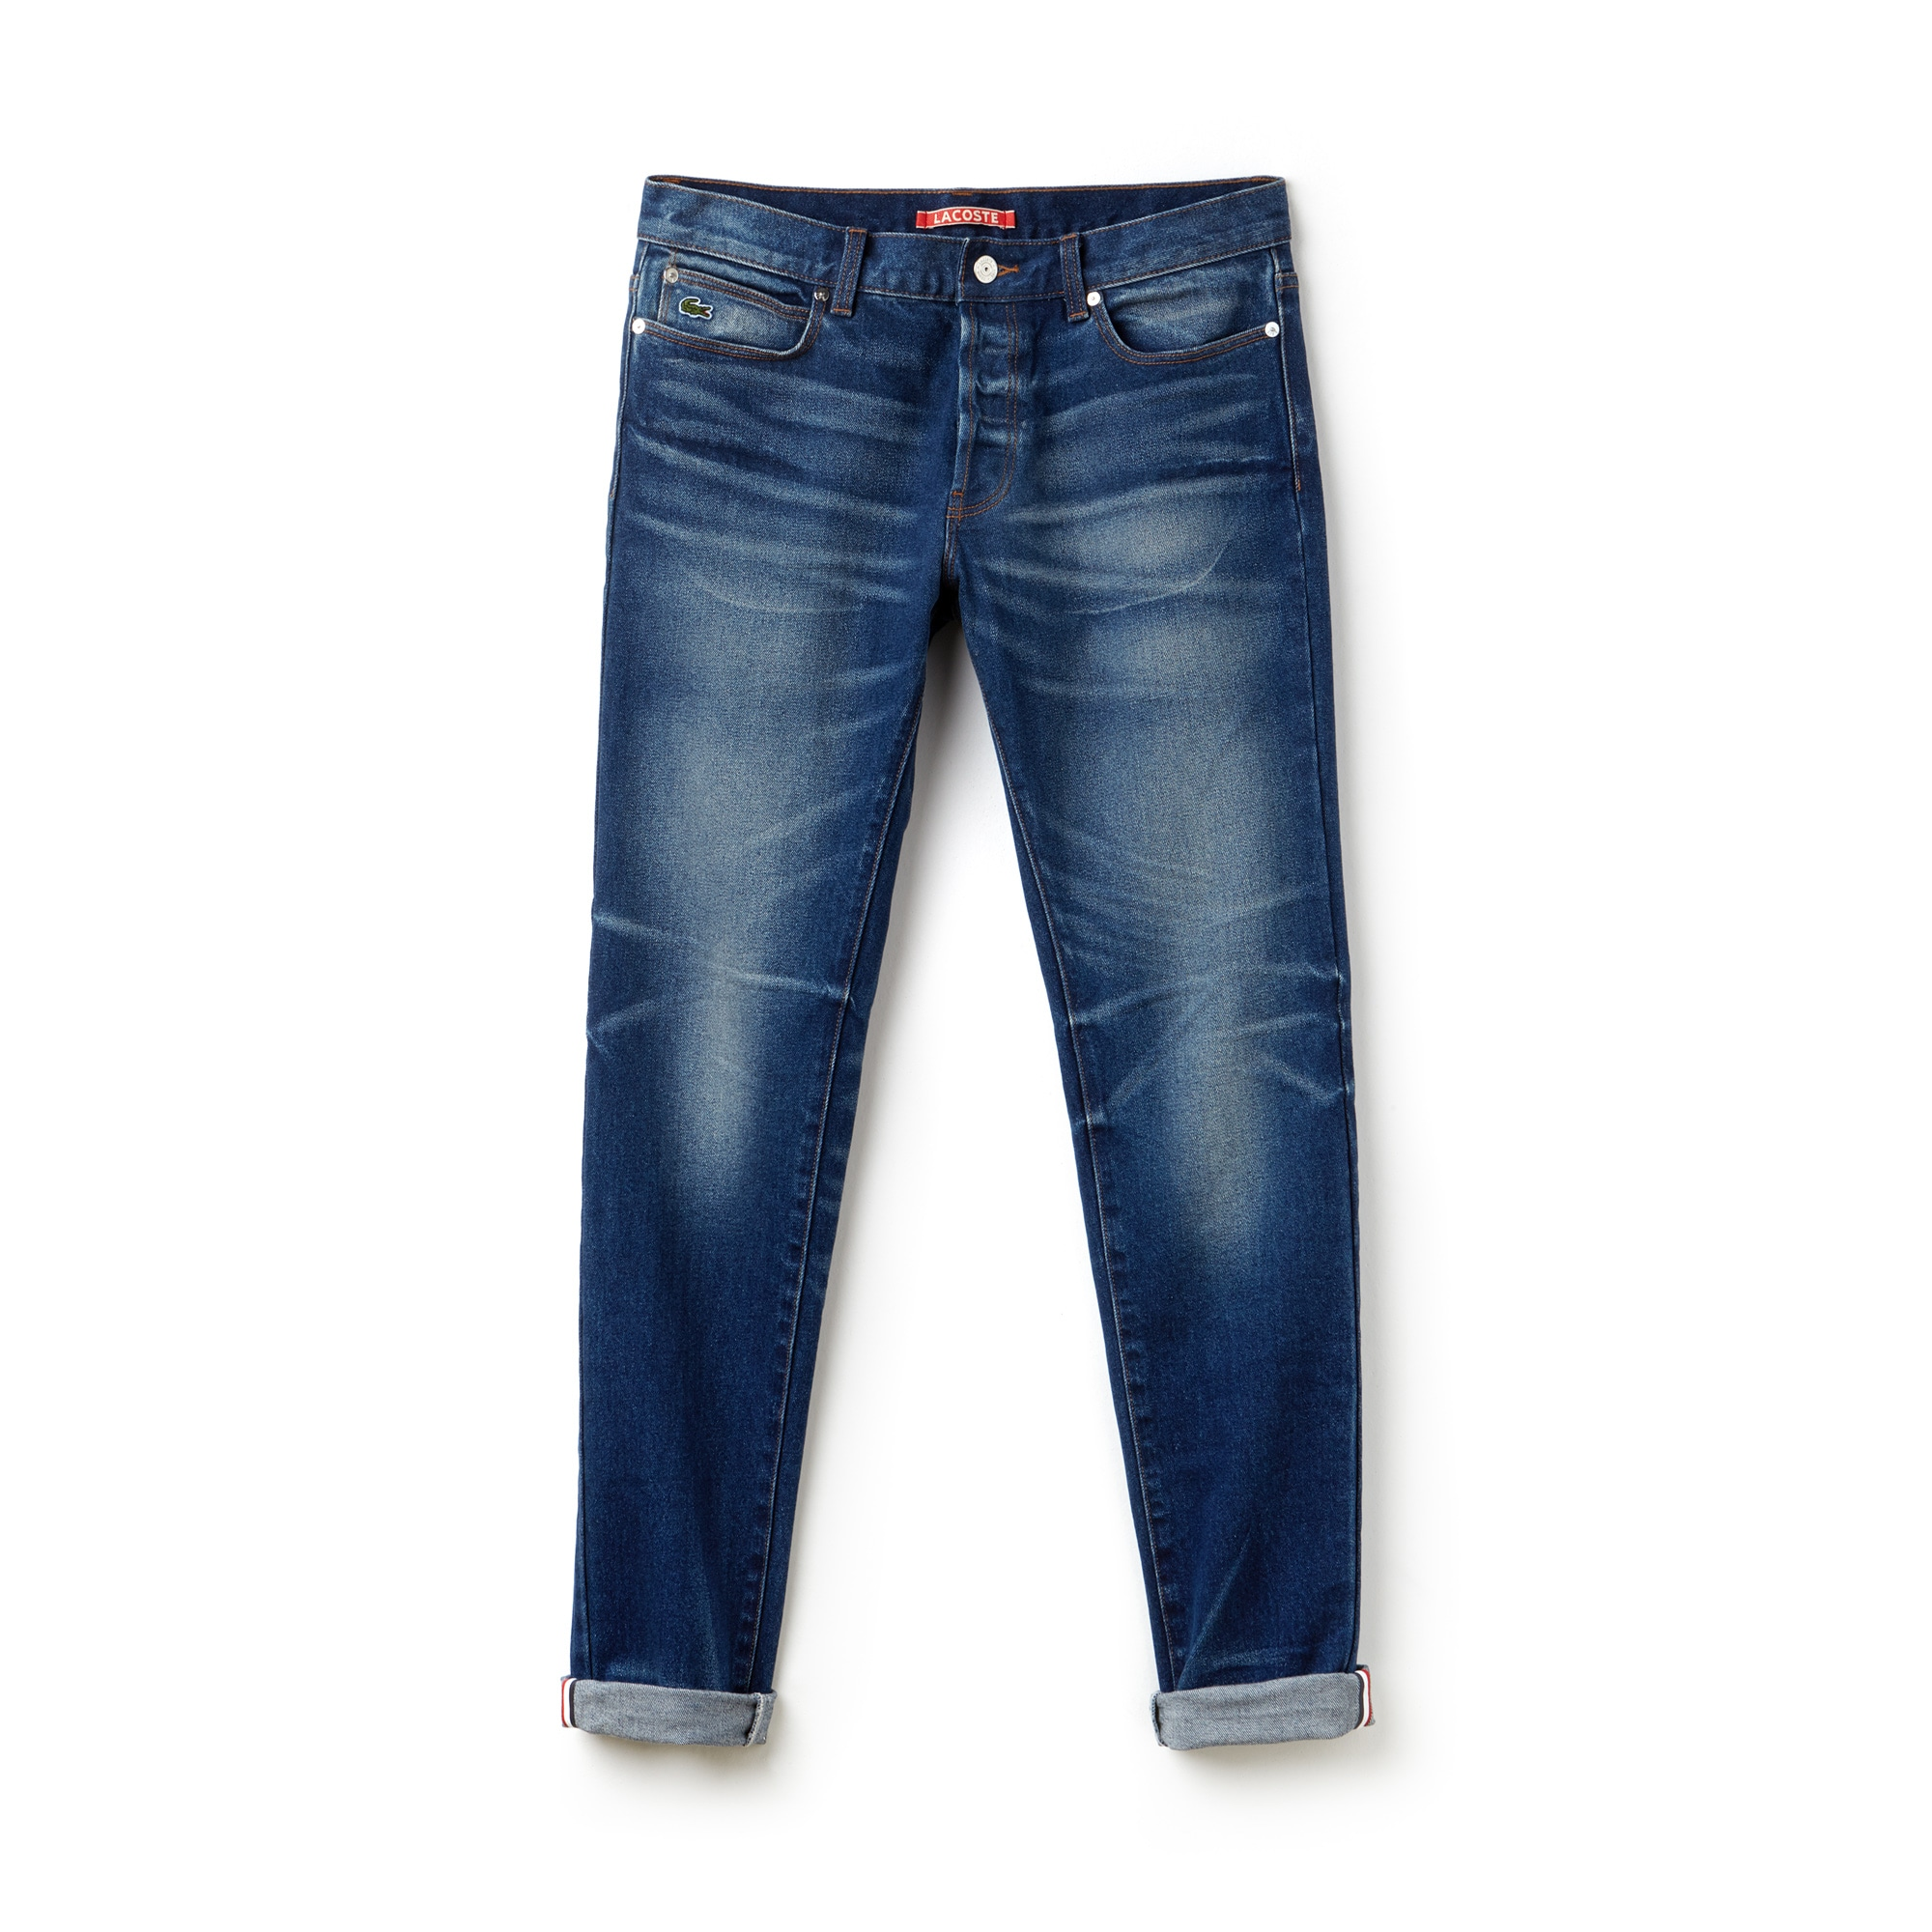 Jean 5 poches Lacoste LIVE en denim stretch avec revers